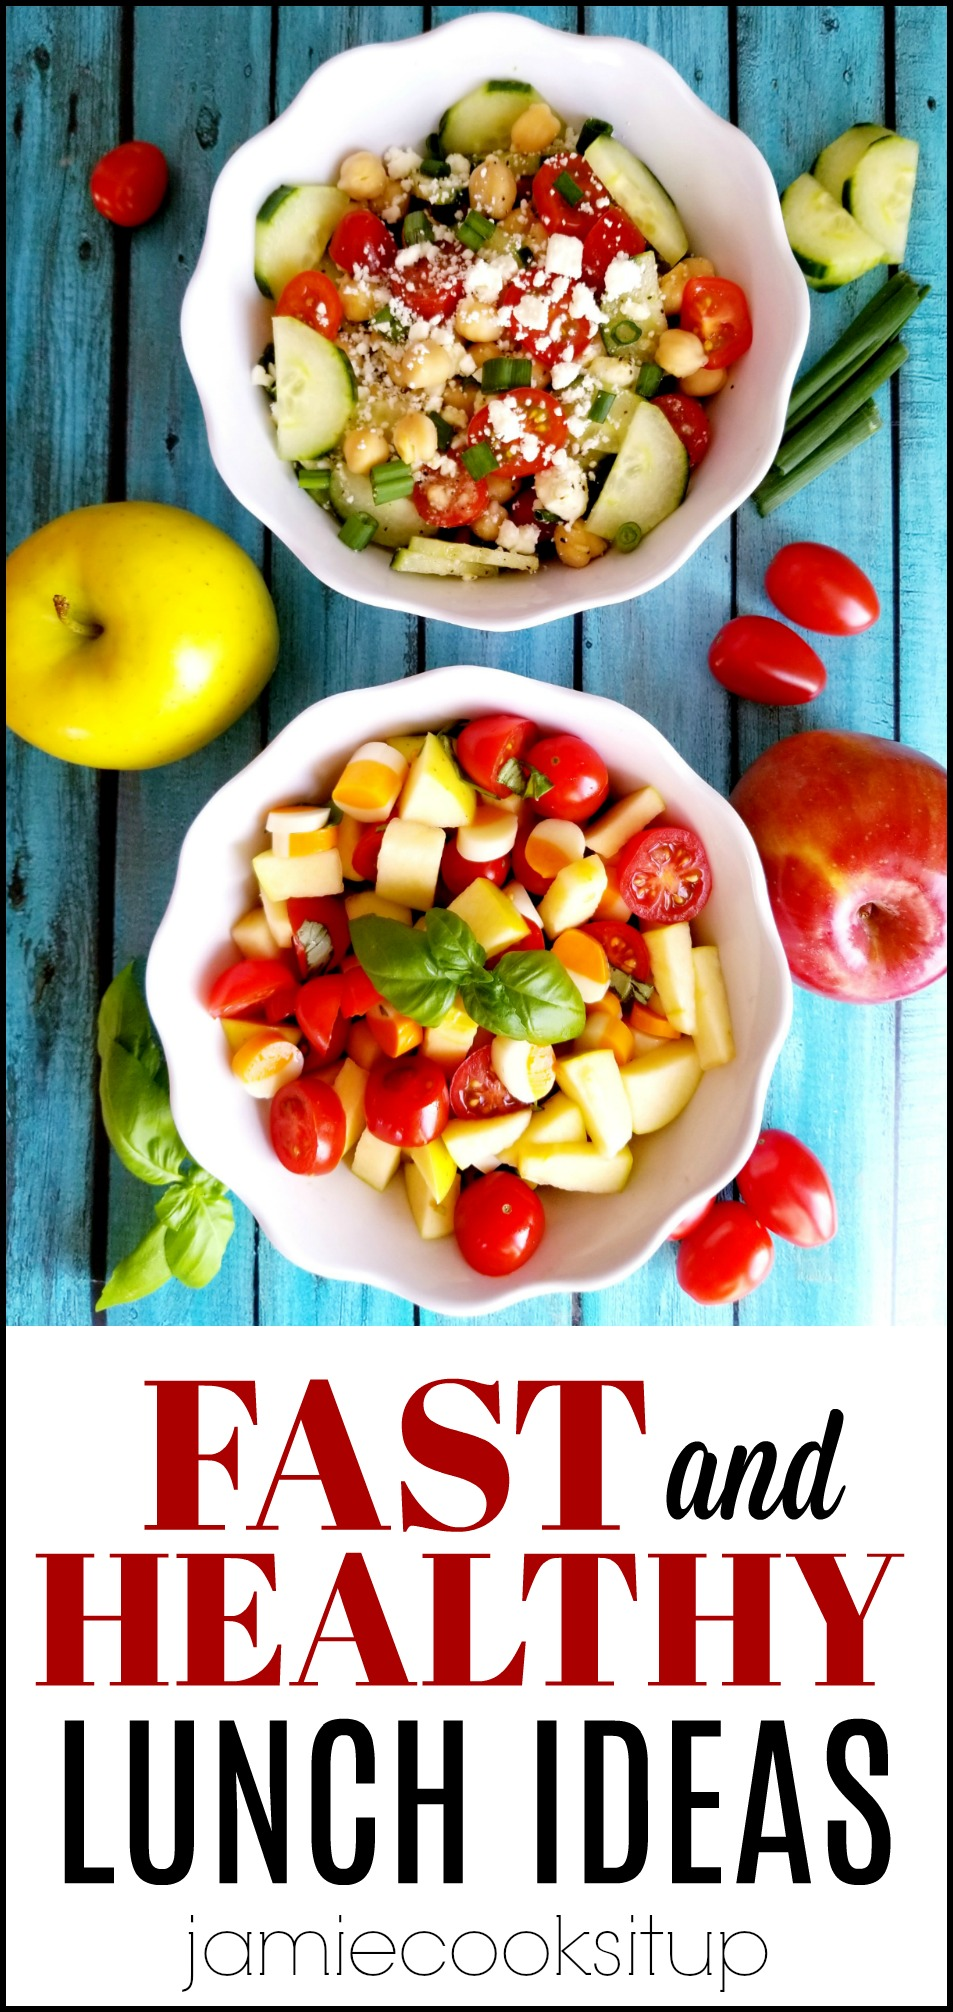 Fast and Healthy Lunch Ideas (Apple Caprese Salad and Chic Pea Greek Salad)